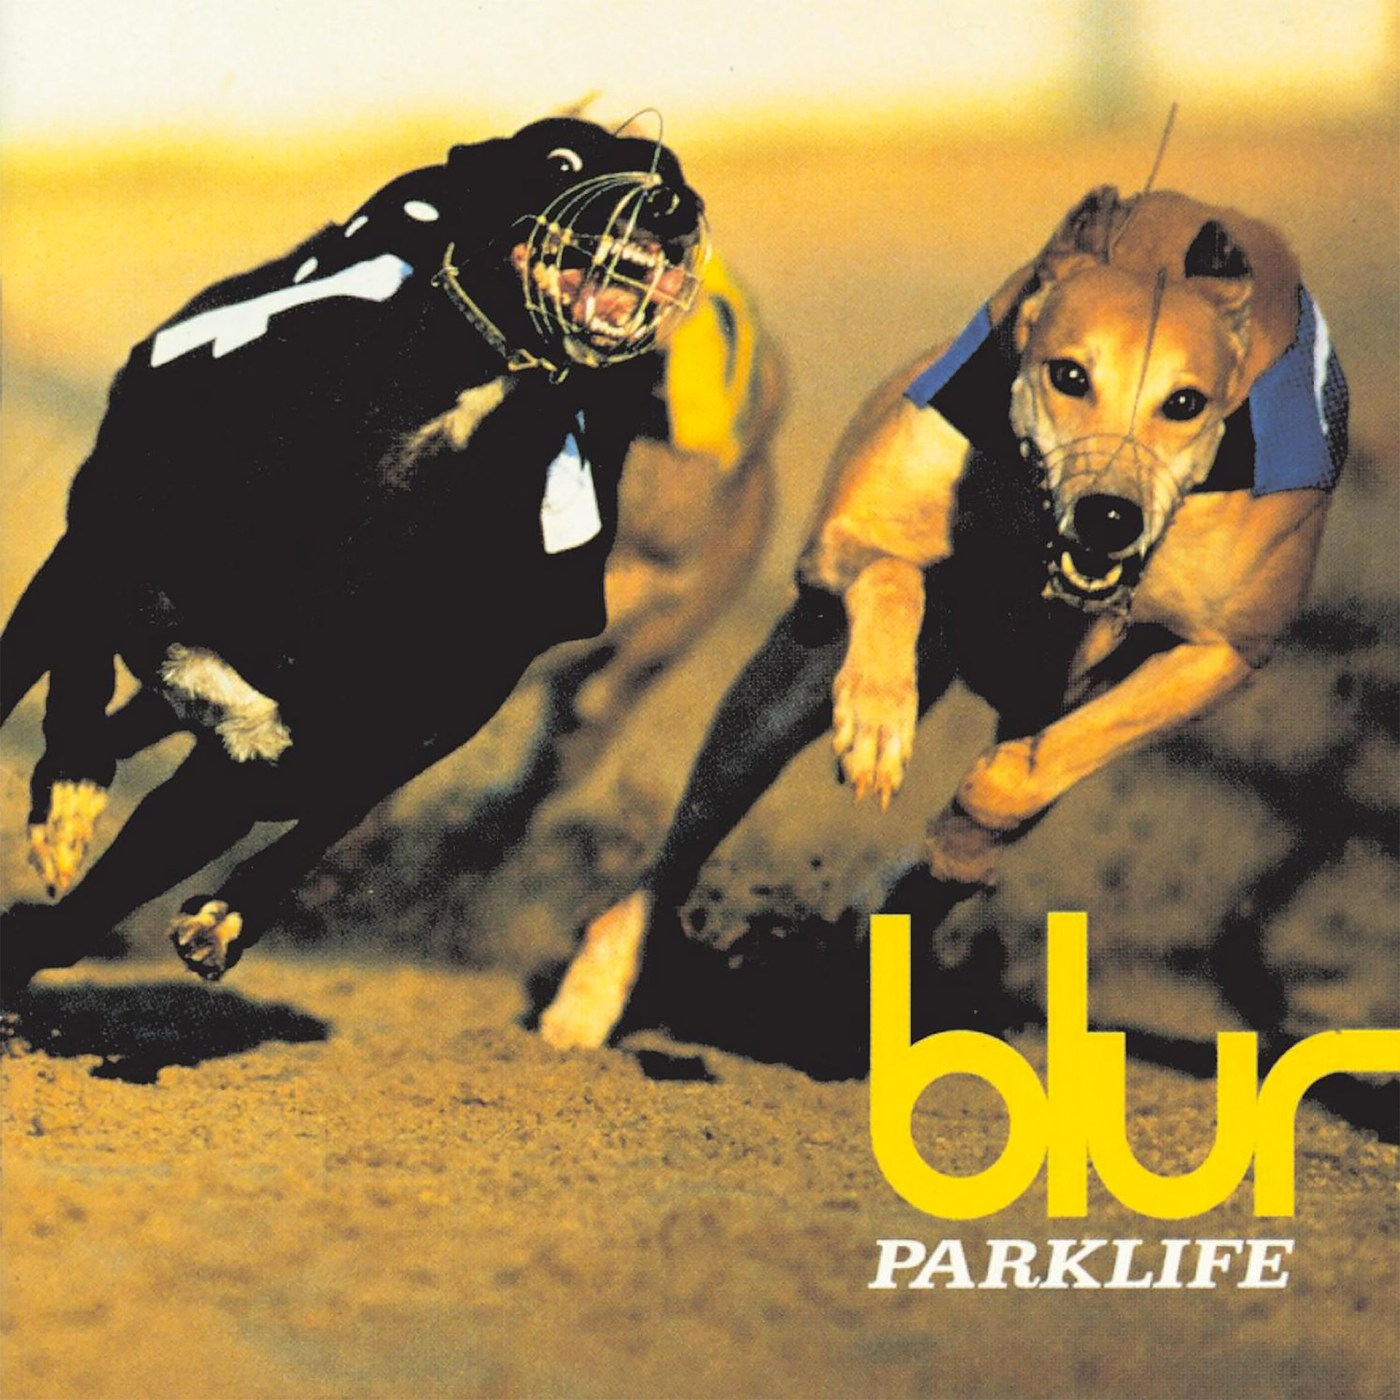 Parklife by Blur, 1994, photography by Bob Thomas, designed by Stylorouge.